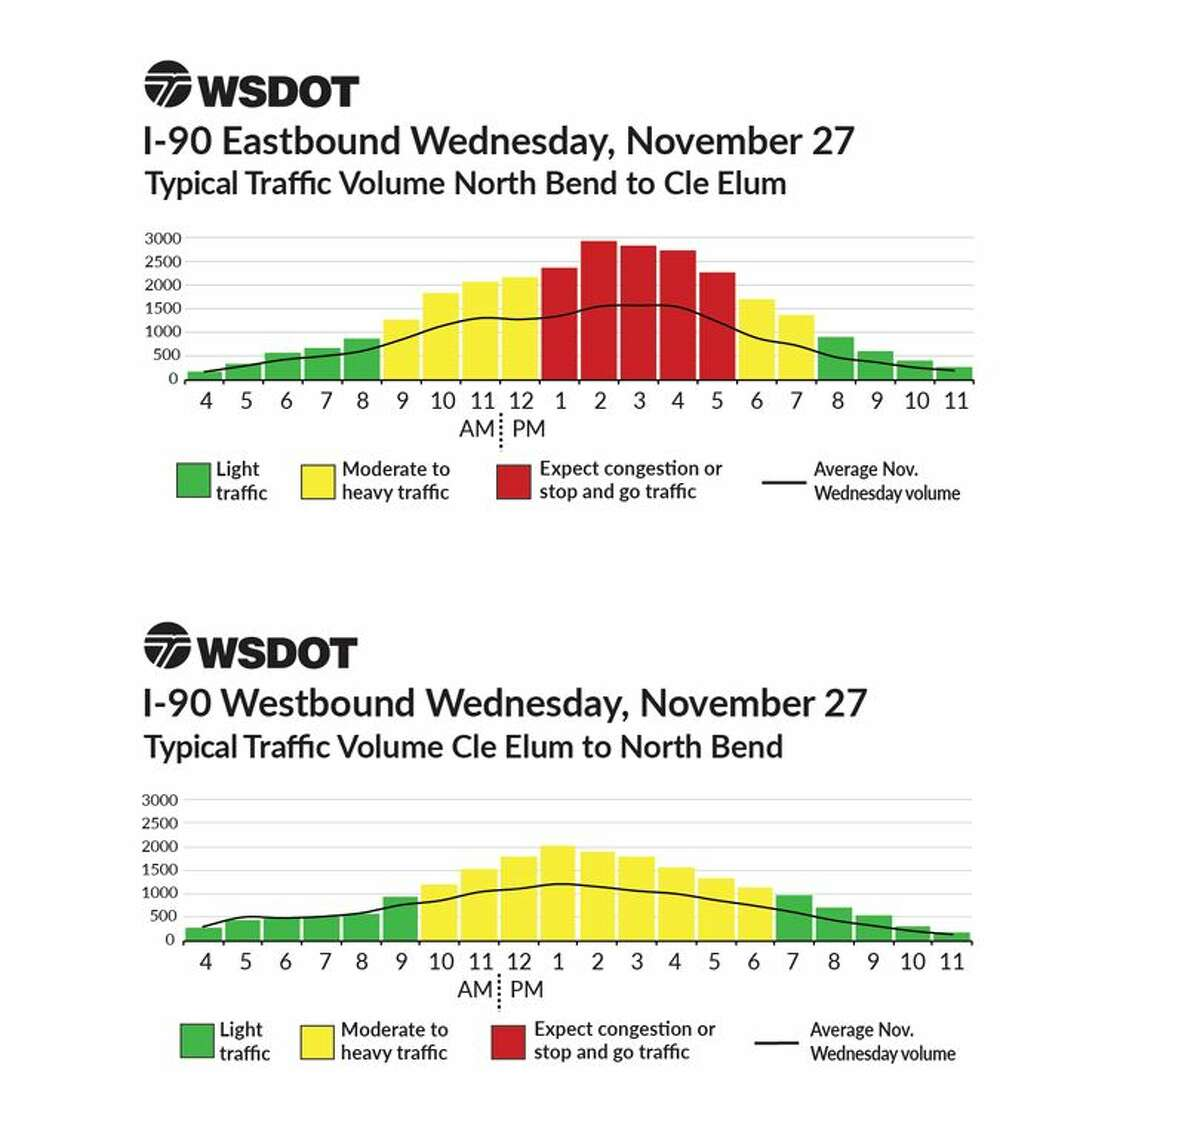 Peak travel times for Thanksgiving as shown by WSDOT historical data.